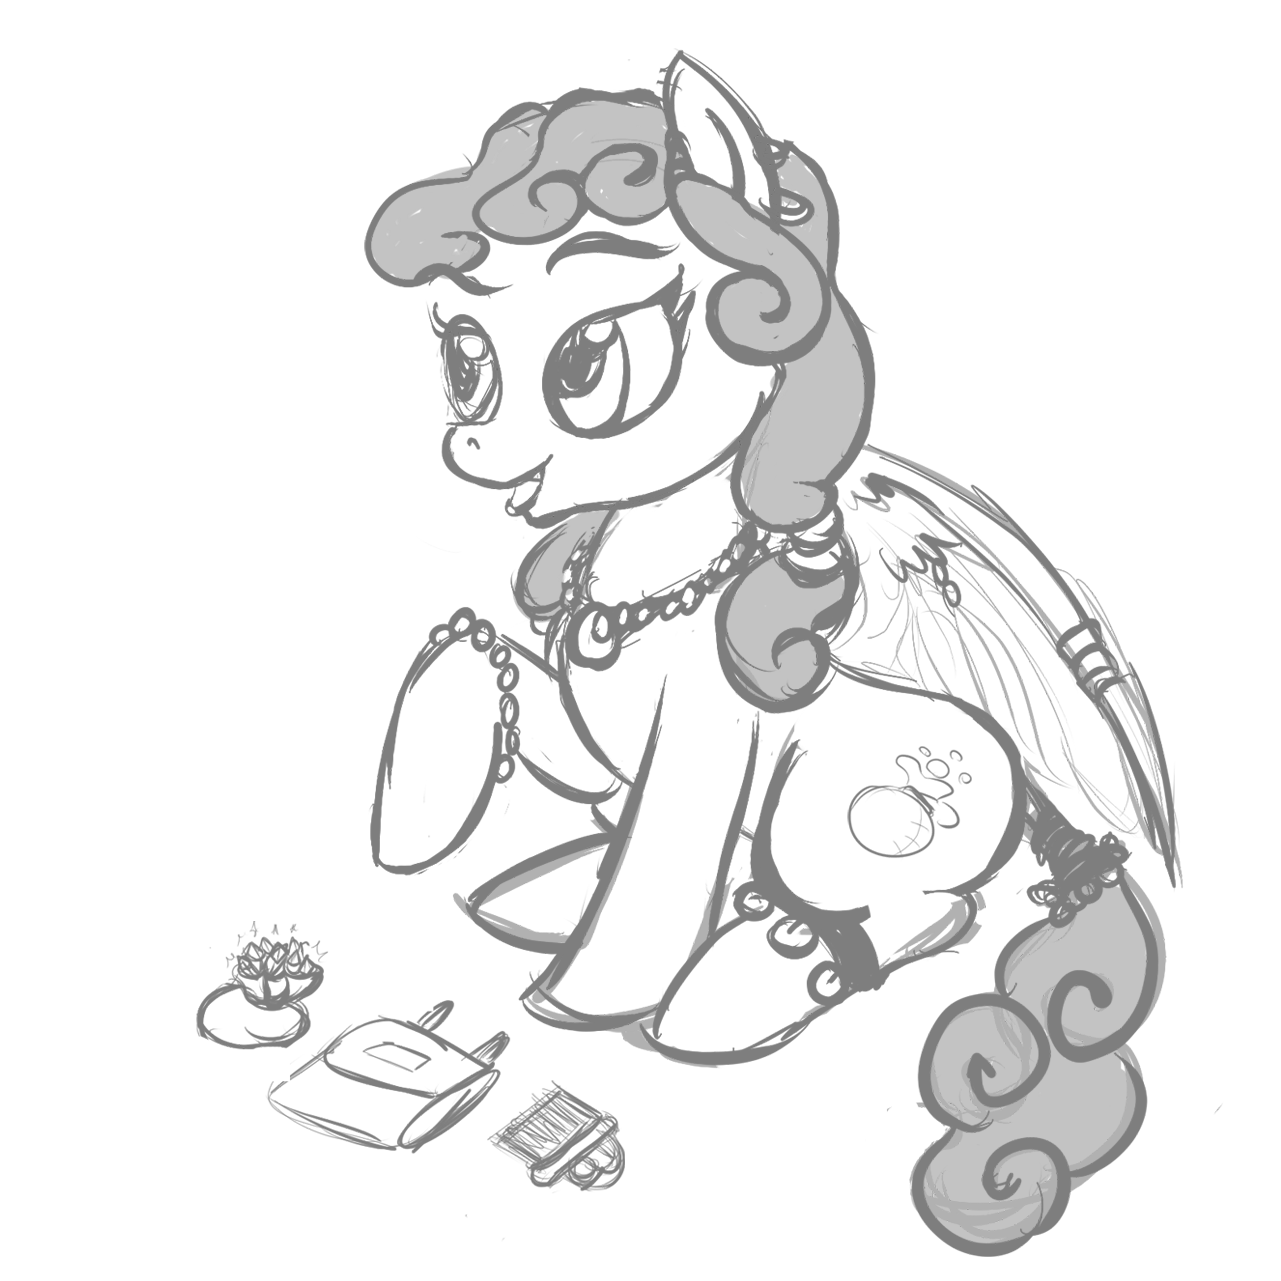 glitter_breeze_quick_sketch_by_velgarn-d